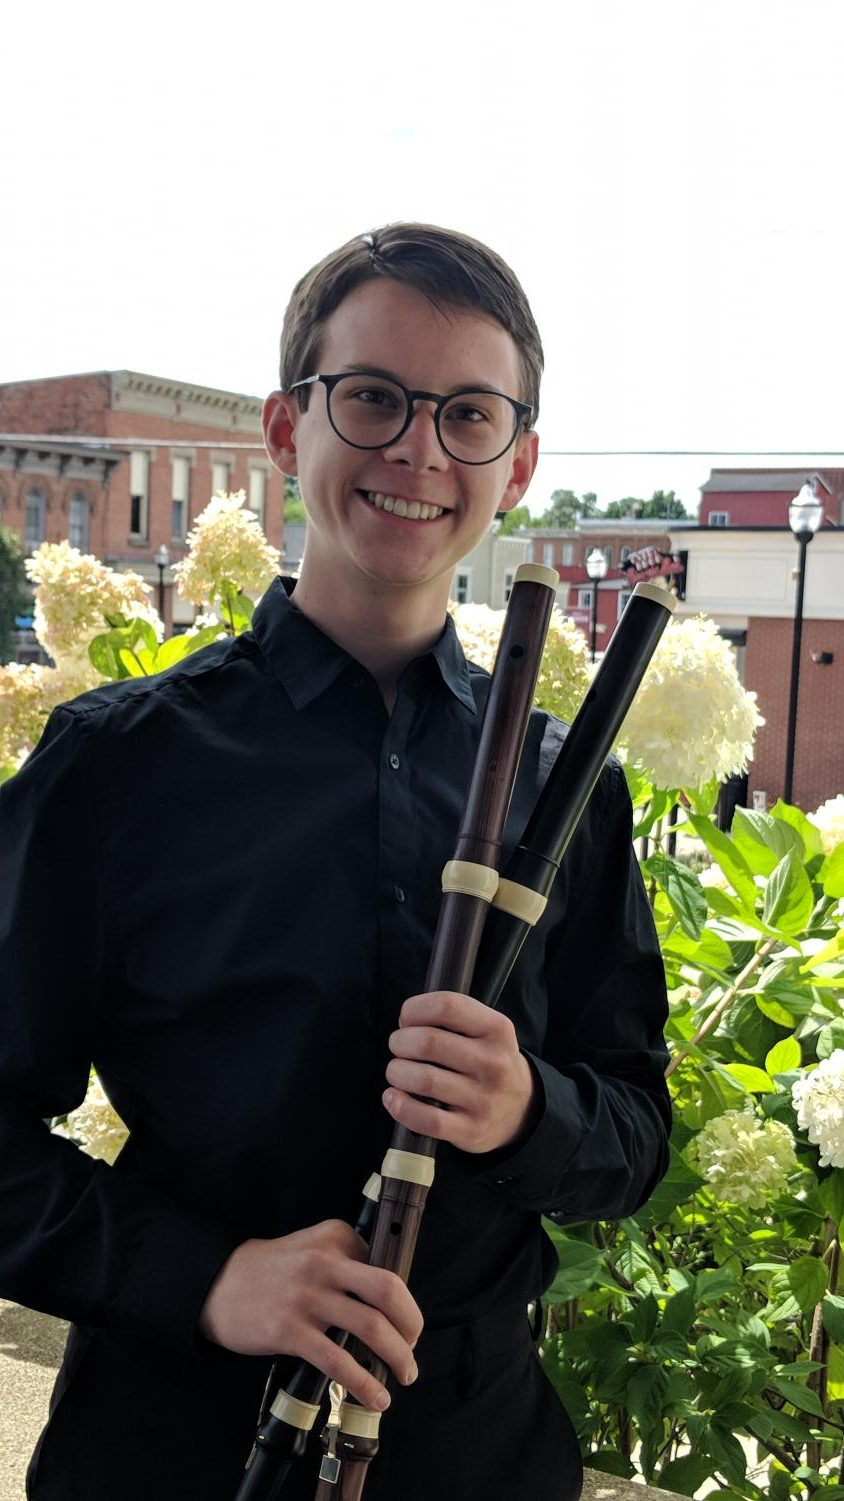 Ian Plansker '20 stands with his flutes. Plansker is graduating two years early to pursue his music career. Photo courtesy of Plansker.